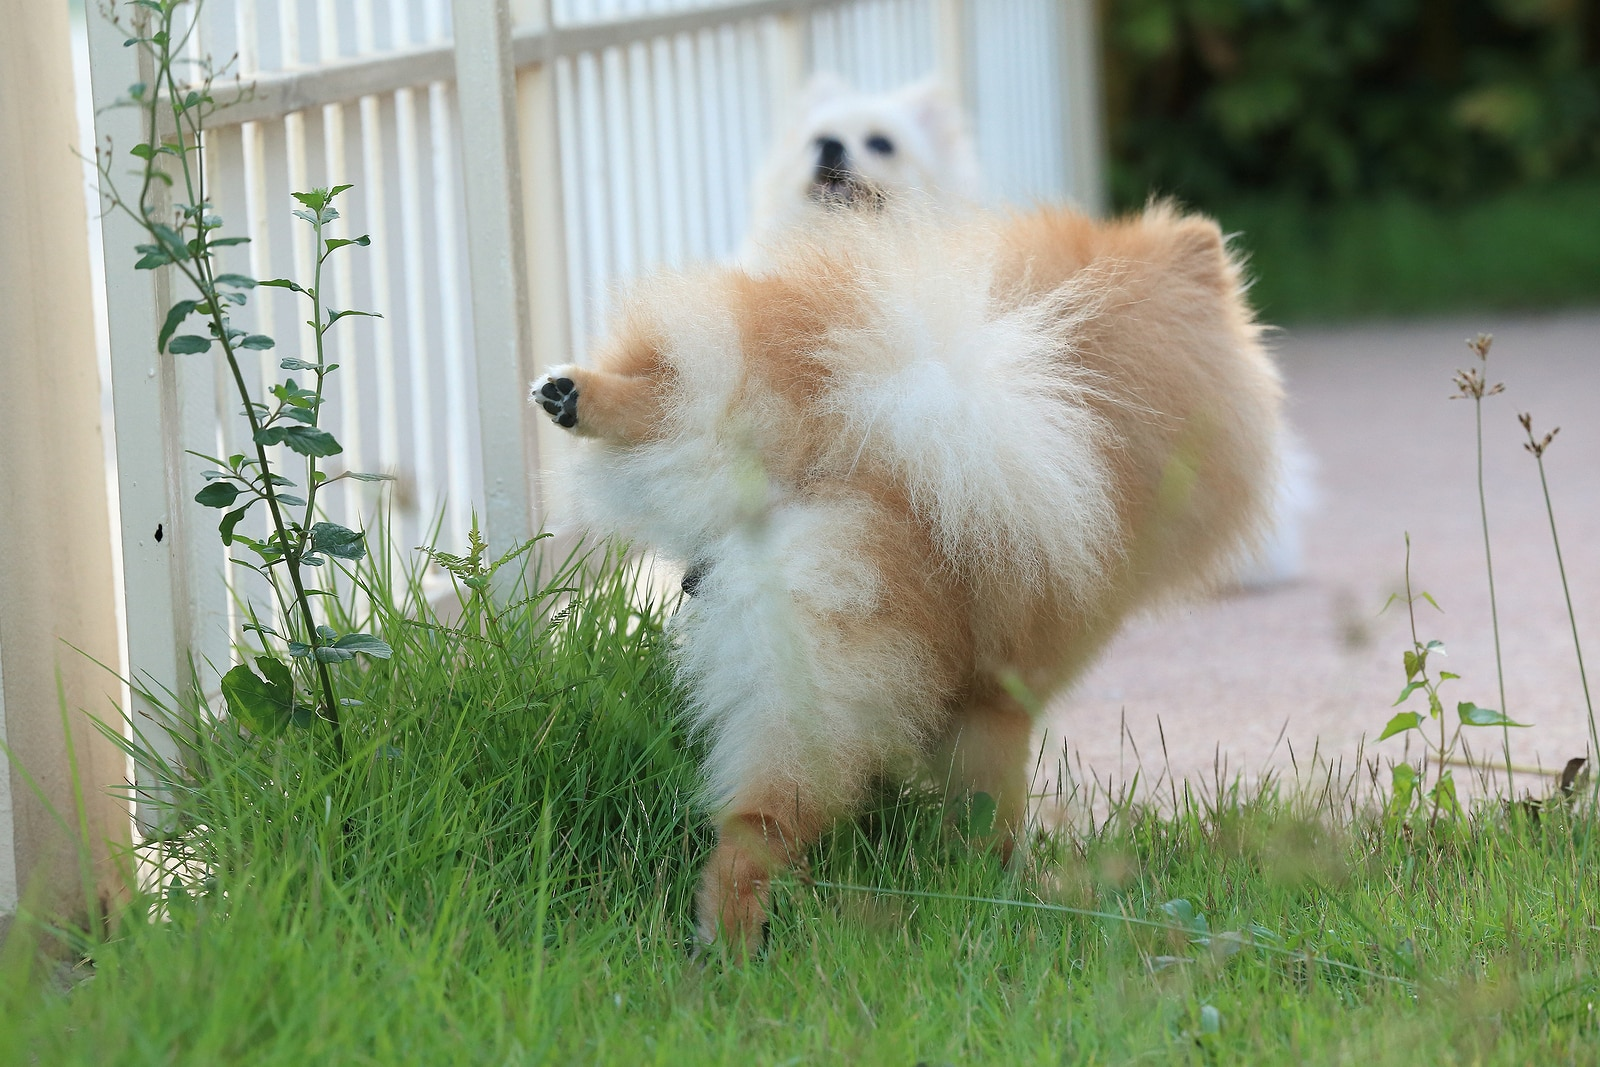 Pomeranian hikes leg and pees on a tall patch of grass while another looks on.